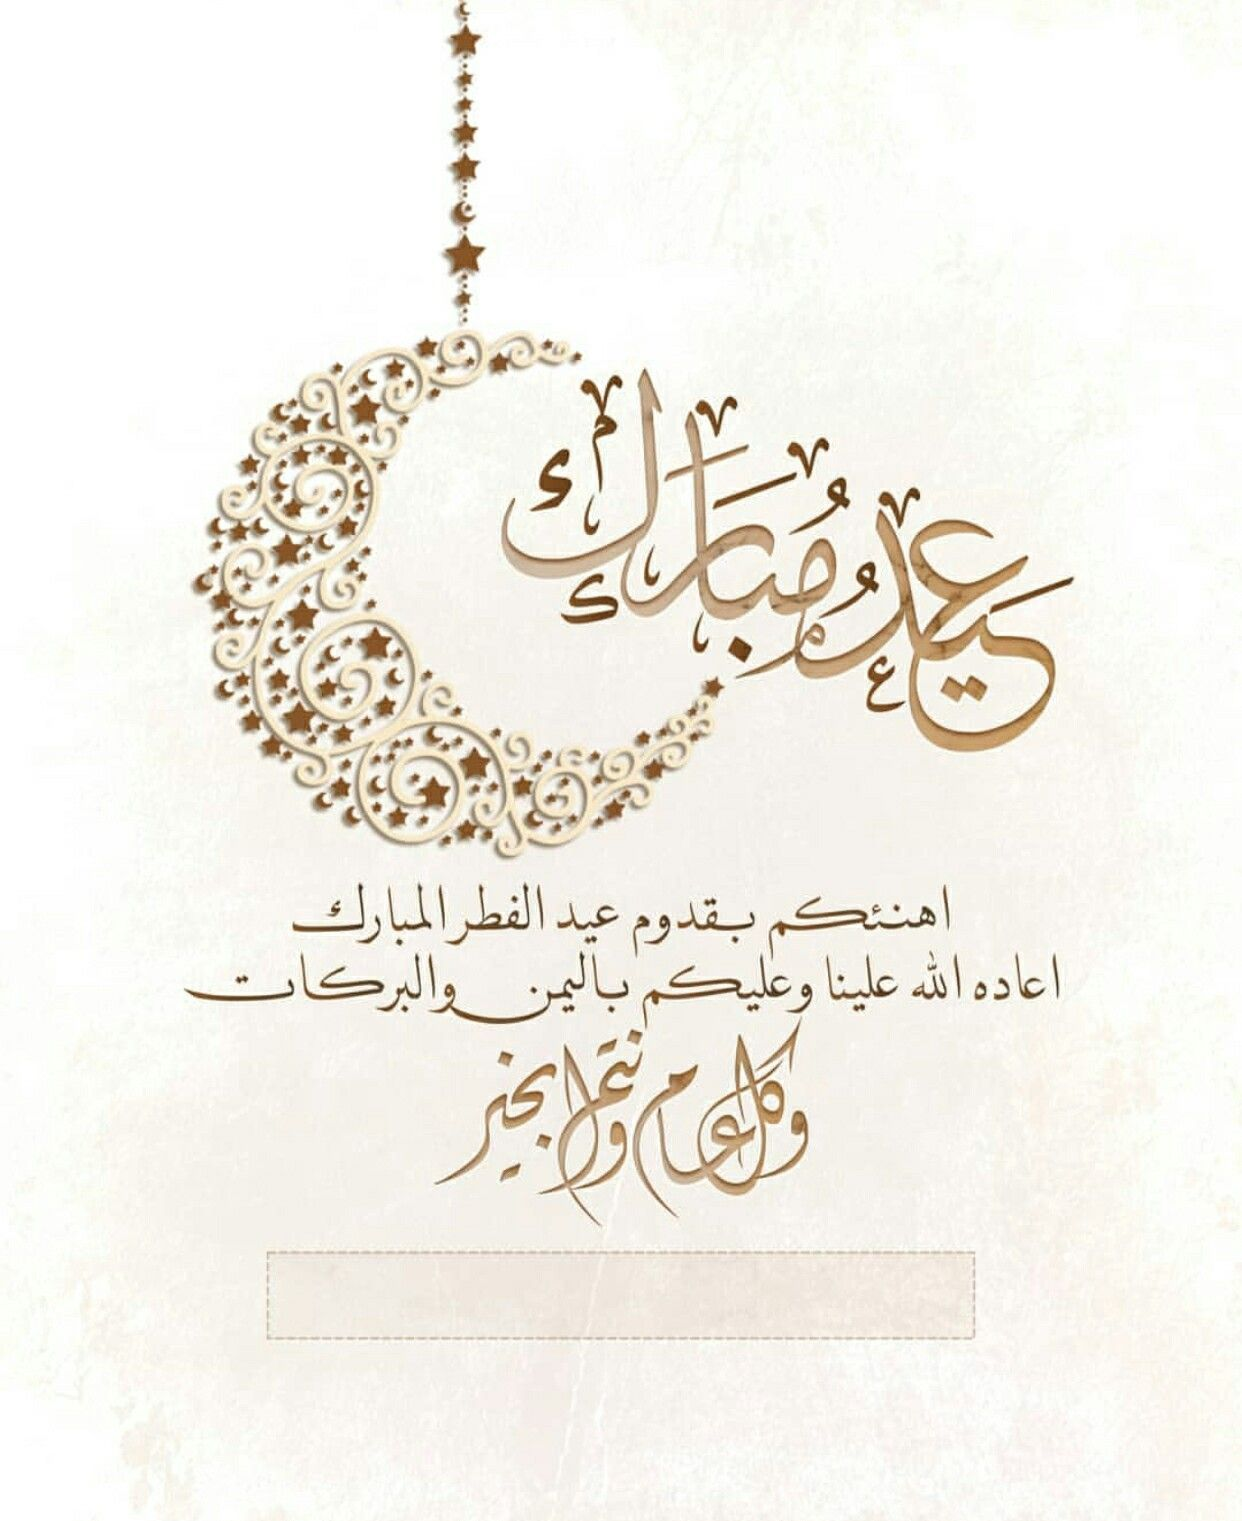 Pin By The Moon On عيدكم مبارك Eid Card Designs Eid Greetings Eid Al Adha Greetings